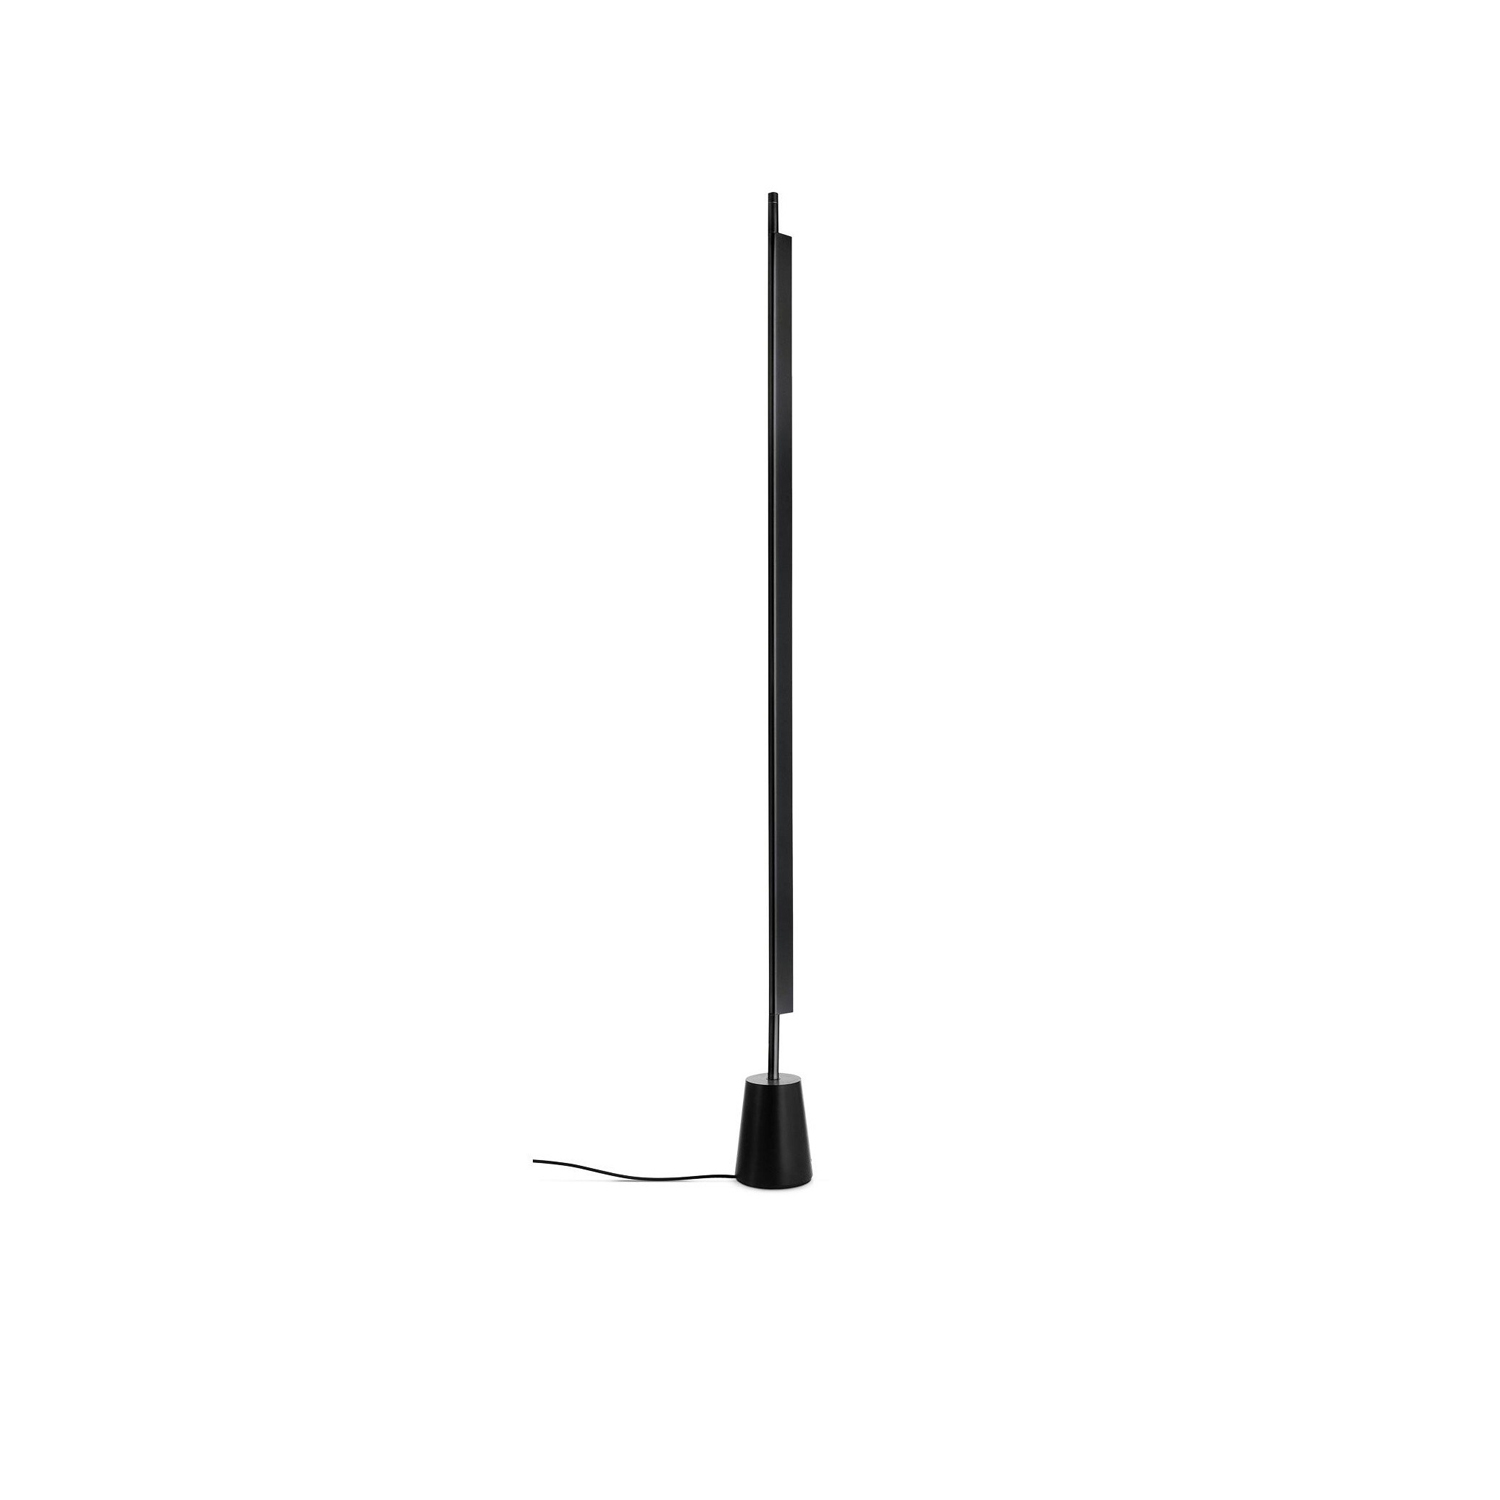 Compendium Floor Lamp - The Compendium floor version provides a diffuse light. The body houses a high-efficiency LED source and rotates freely on the base to direct the light towards the wall, preventing direct glare.  | Matter of Stuff